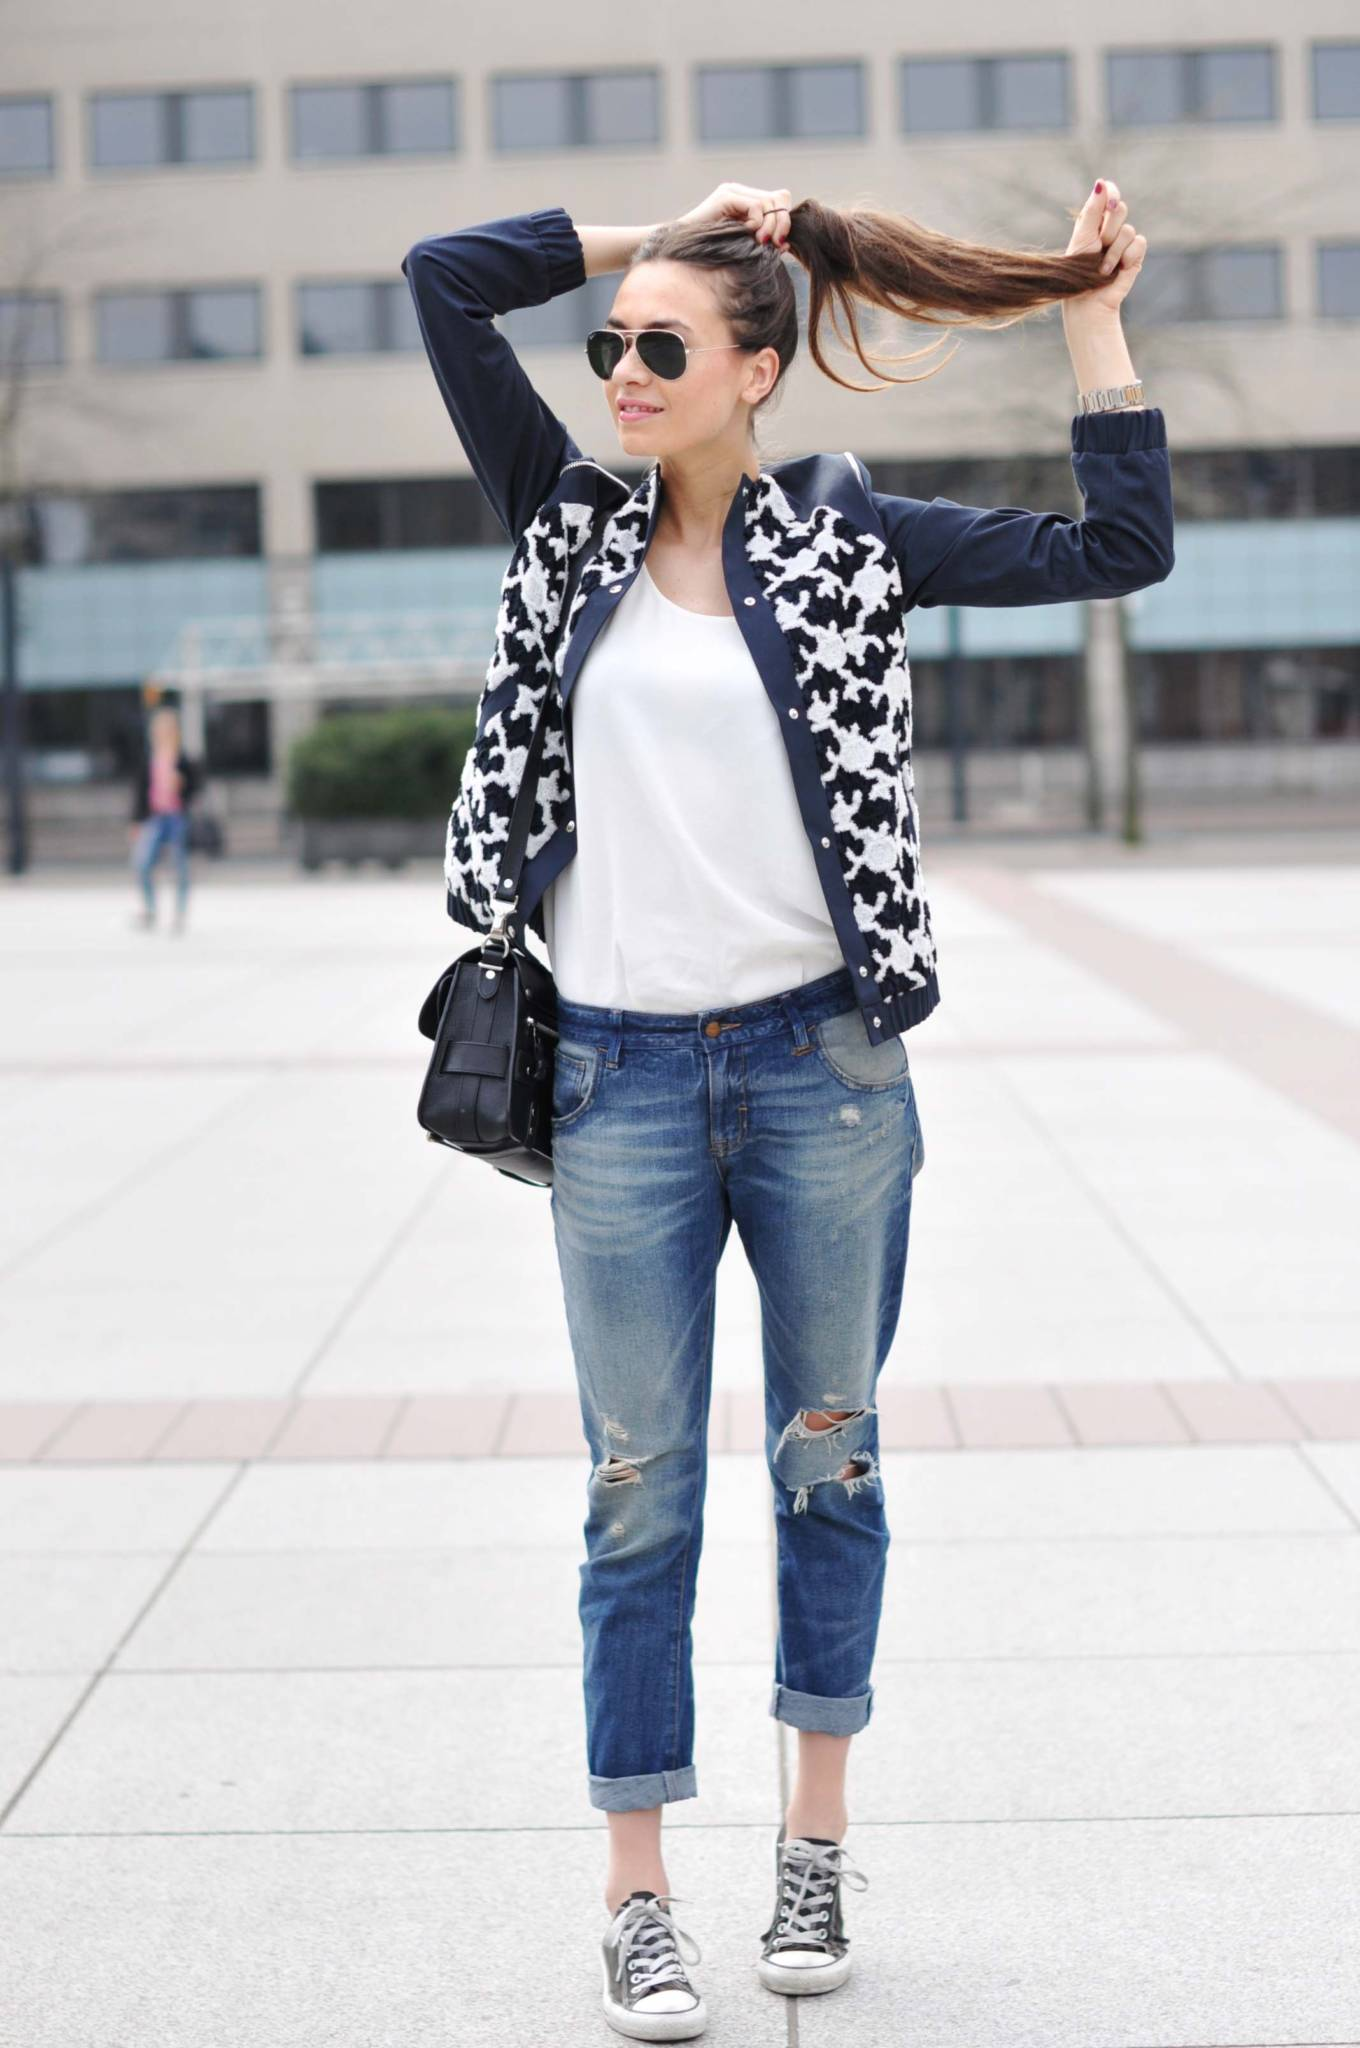 http://mckela.com/wp-content/uploads/2016/08/ripped-jeans-and-converse-sneakers.jpg